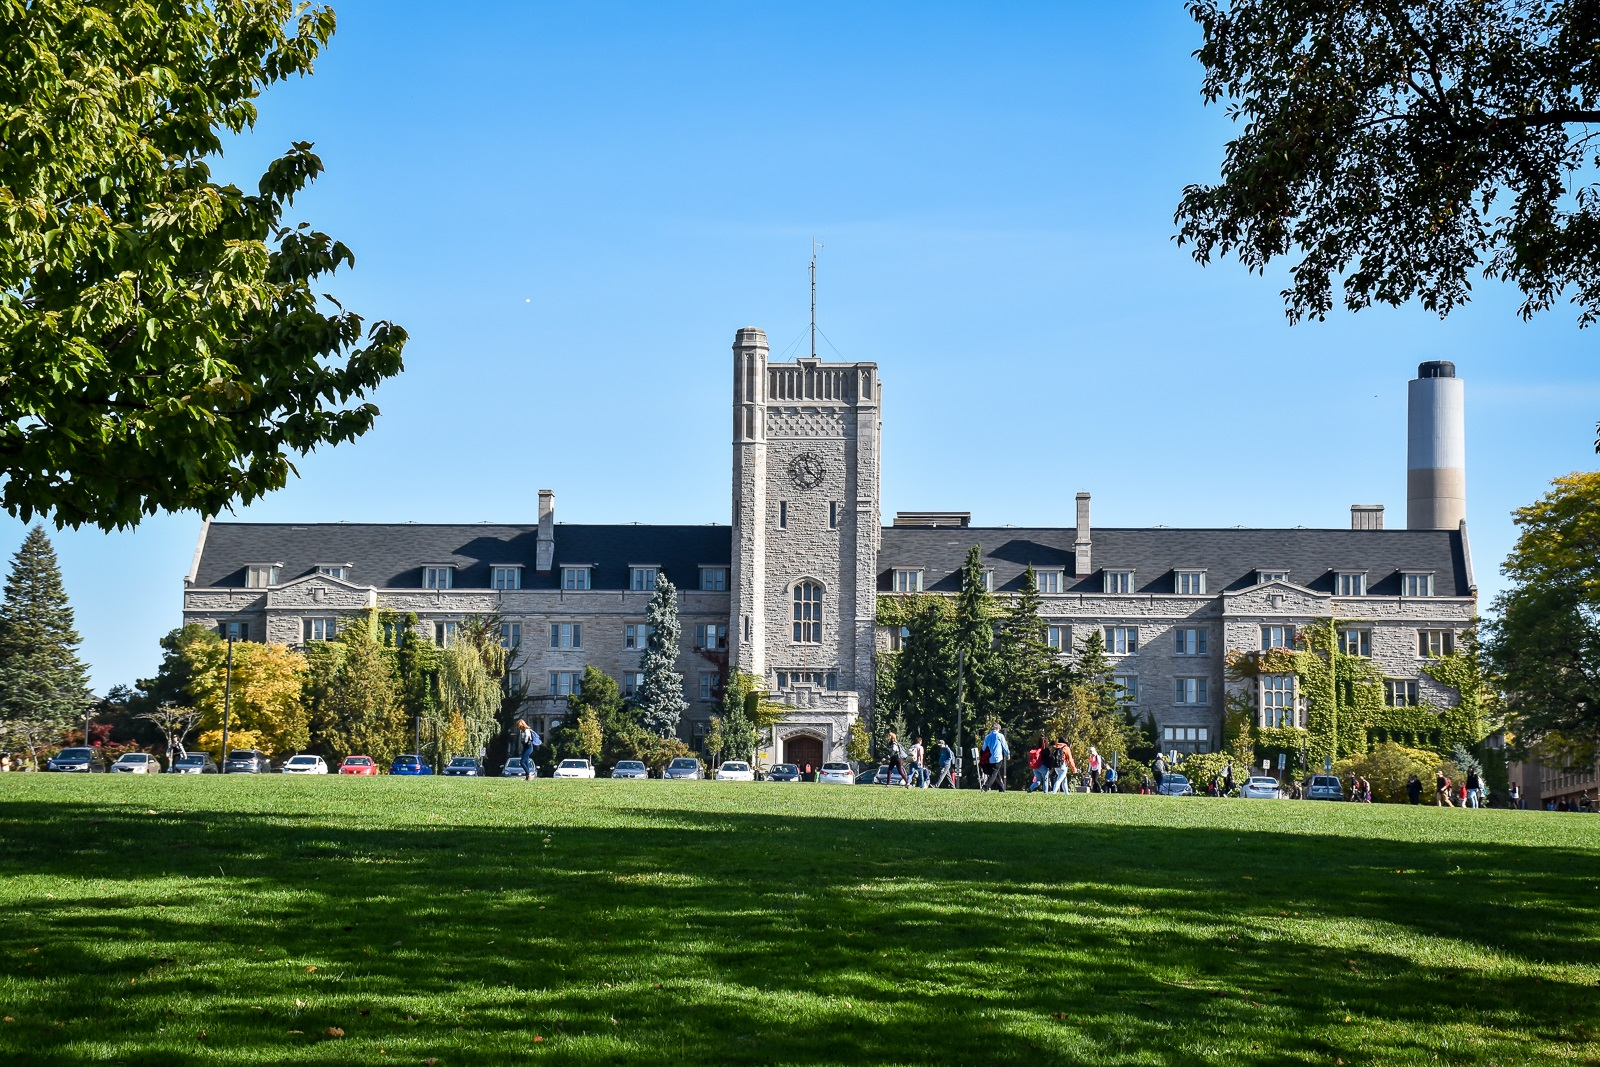 University Of Guelph: University Of Guelph Poised To Help Canada Become Agri